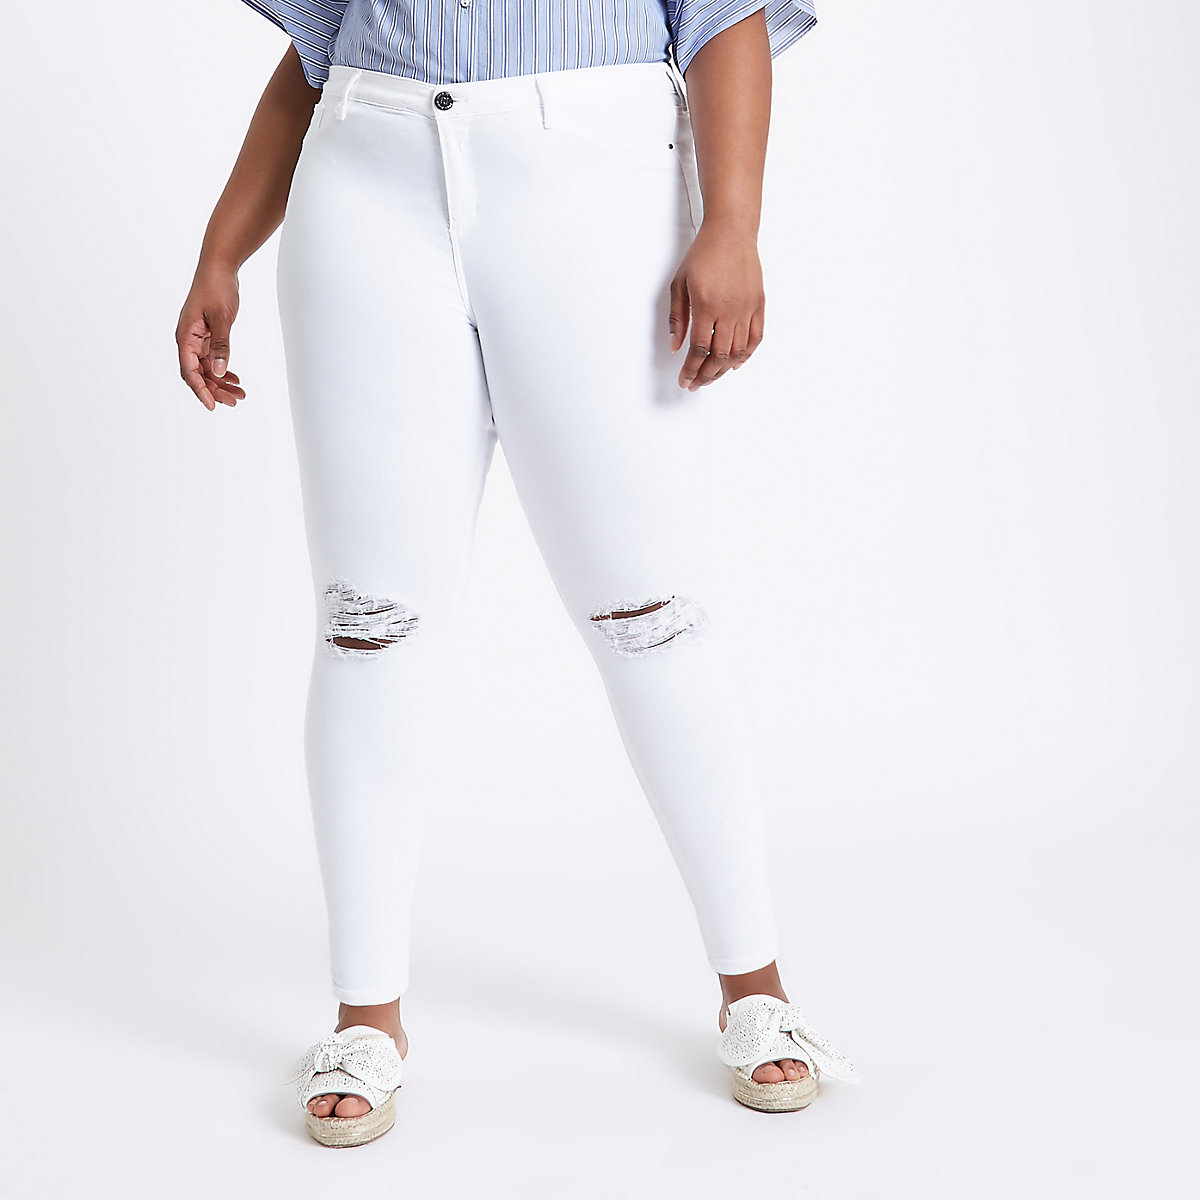 Molly ‒ Weiße Jeans im Used-Look